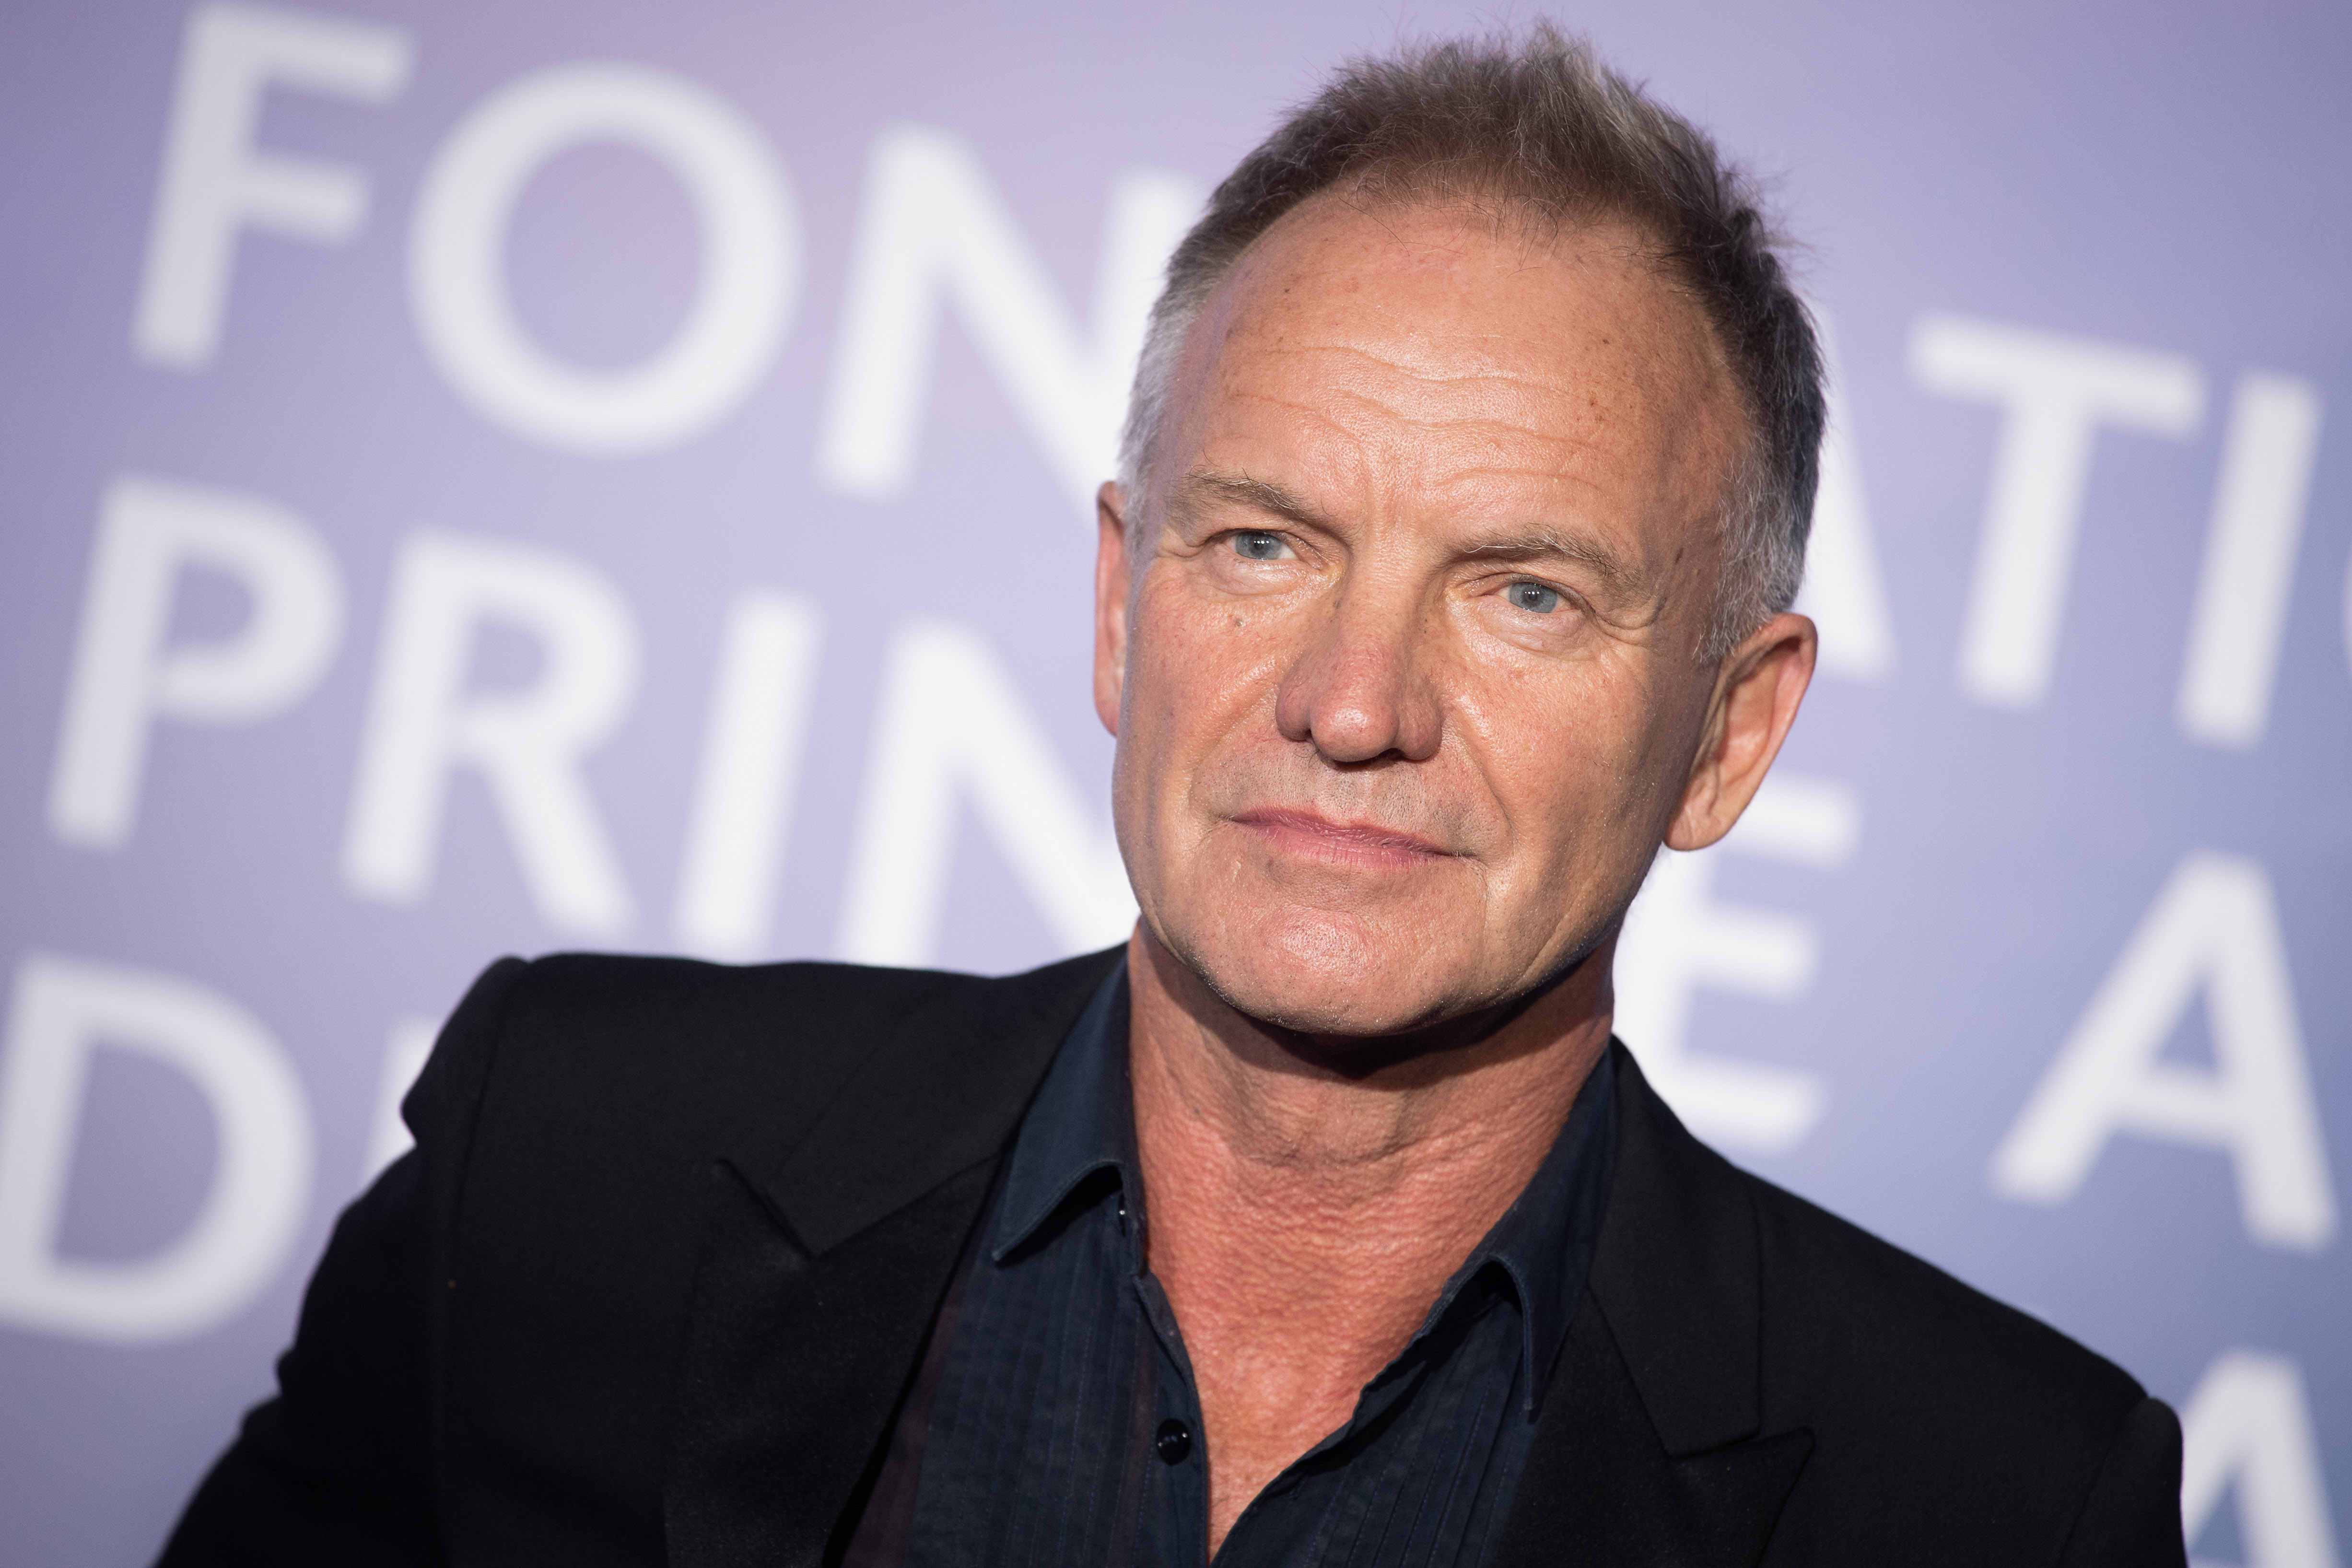 MONTE-CARLO, MONACO - SEPTEMBER 24: Sting attends the Monte-Carlo Gala For Planetary Health on September 24, 2020 in Monte-Carlo, Monaco. (Photo by SC Pool - Corbis/Corbis via Getty Images)